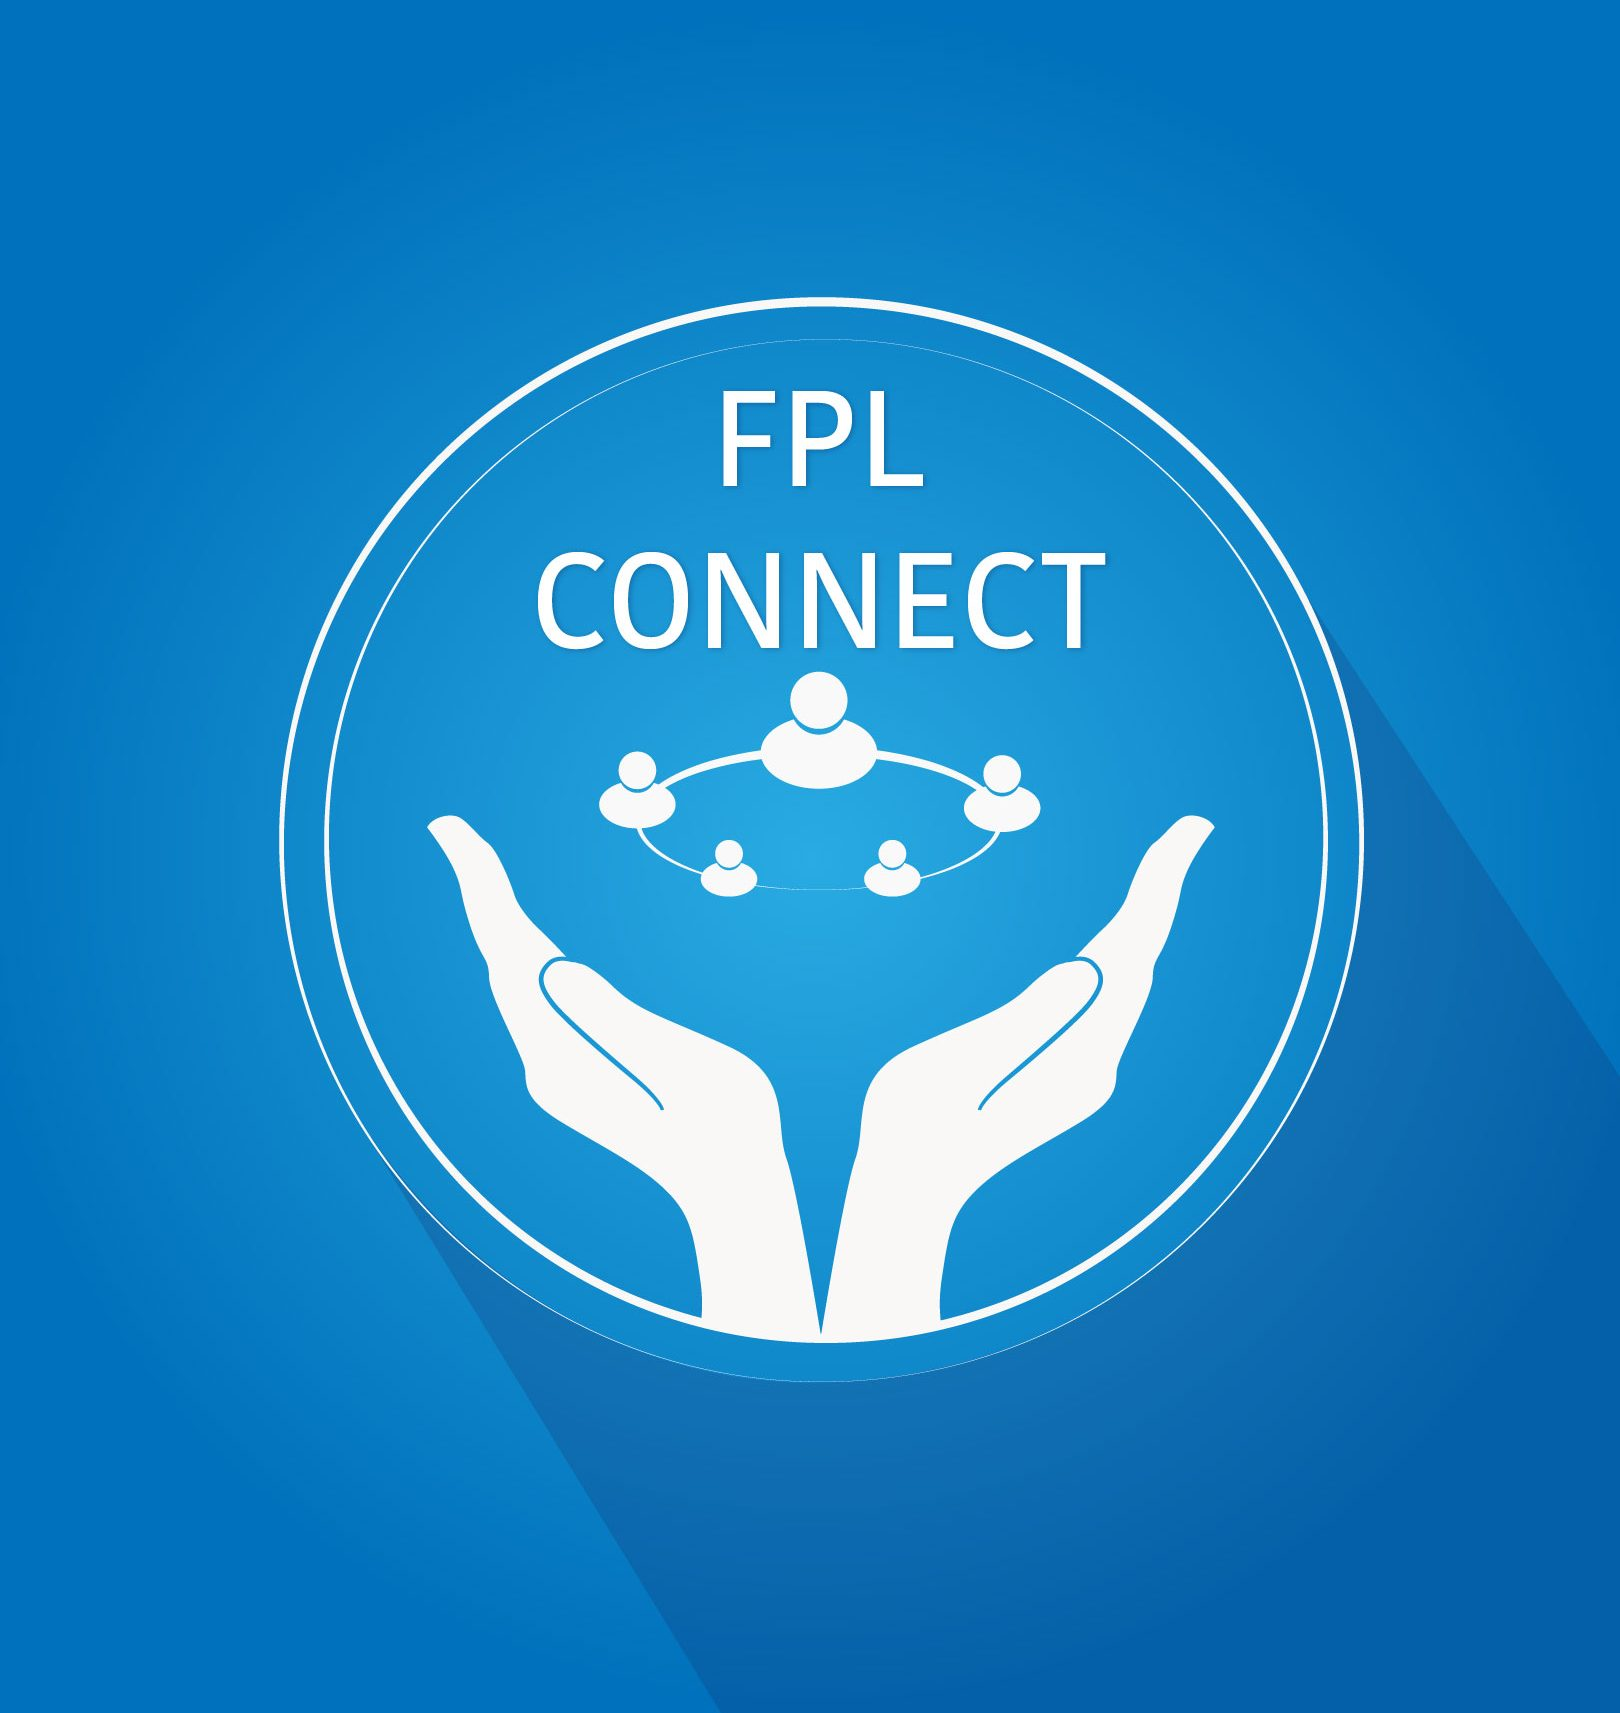 FPL Connect